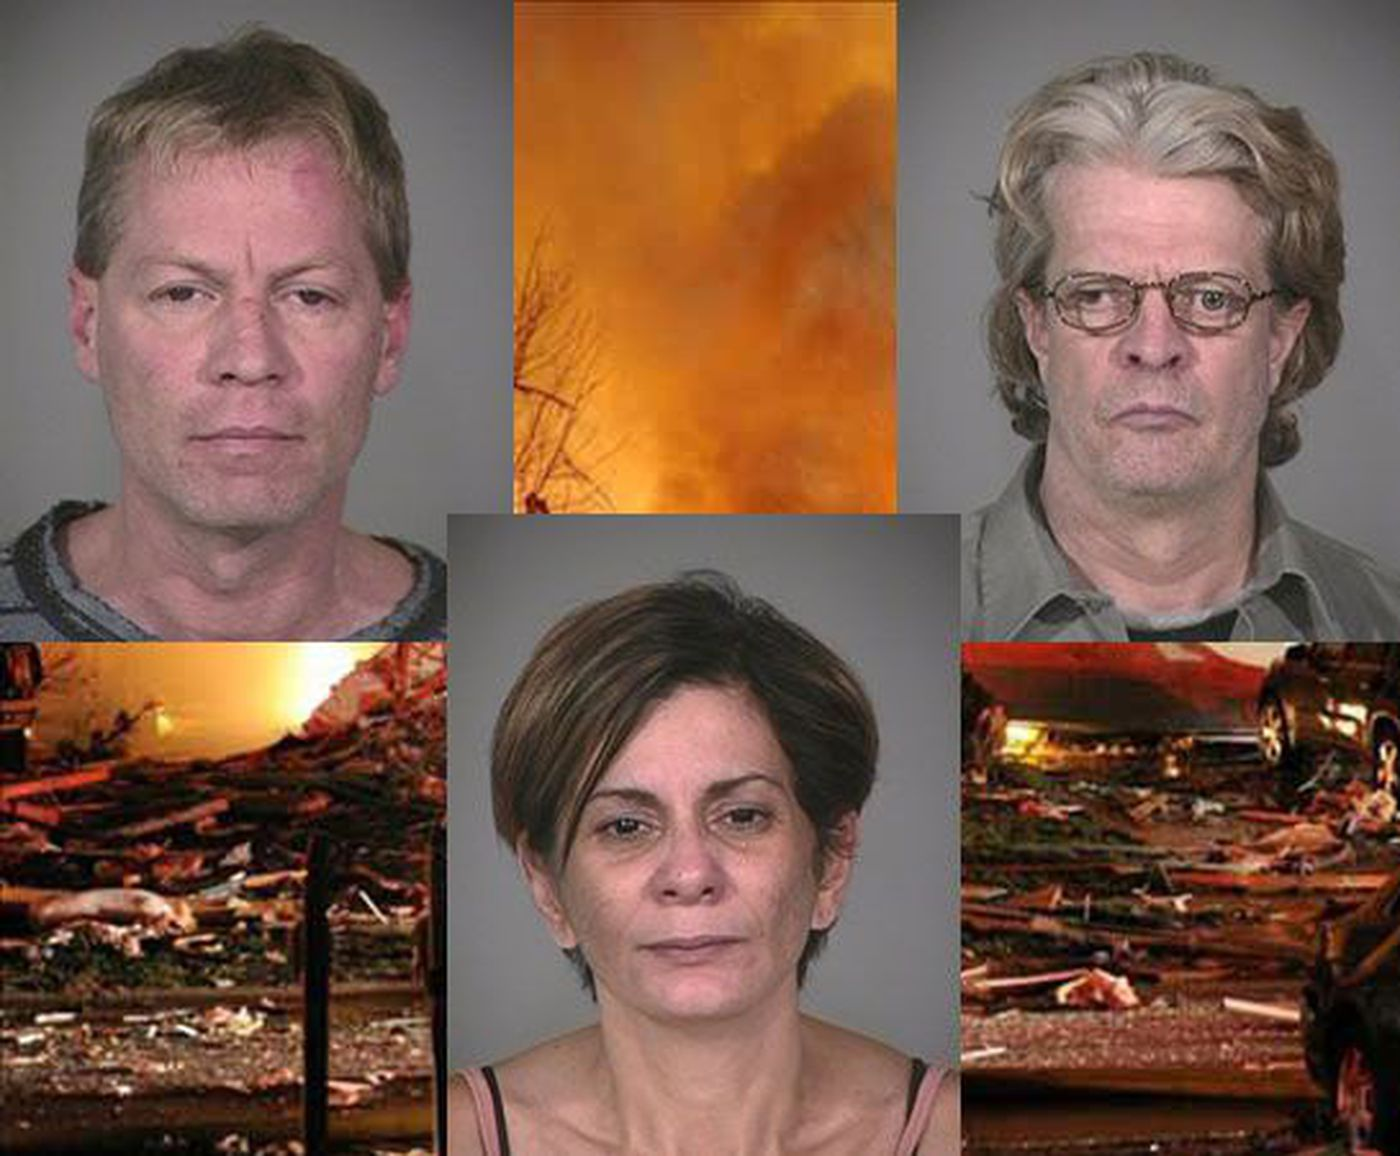 Man Sentenced To Life For Indy House Explosion That Killed